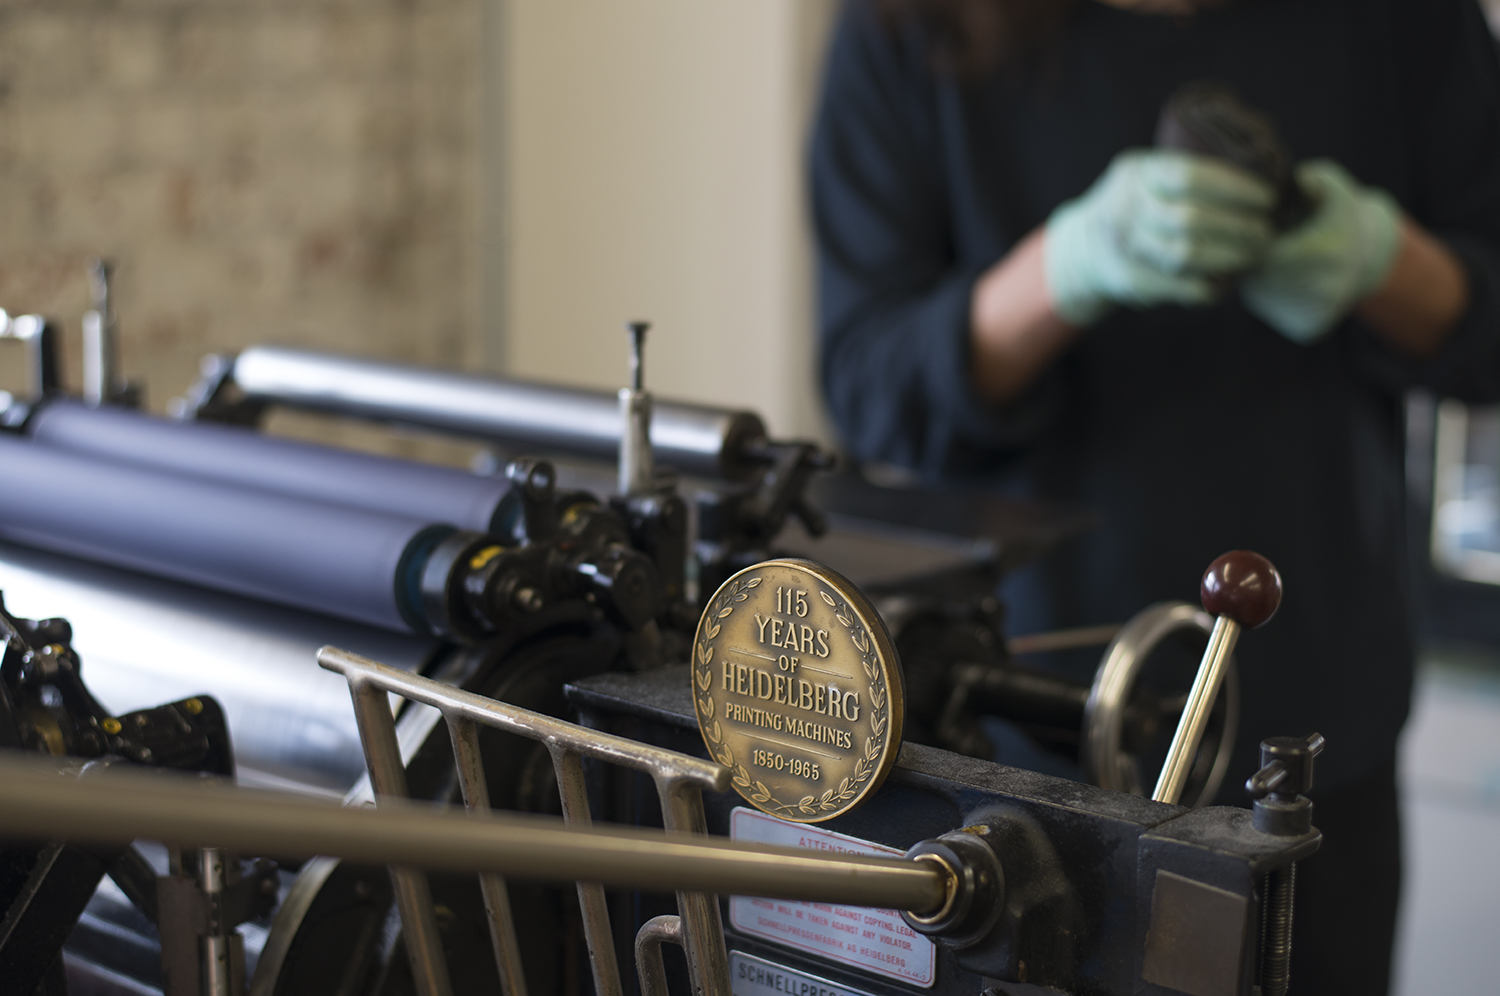 All of our Heidelberg Windmill printing presses date from the 1950's and 1960's.